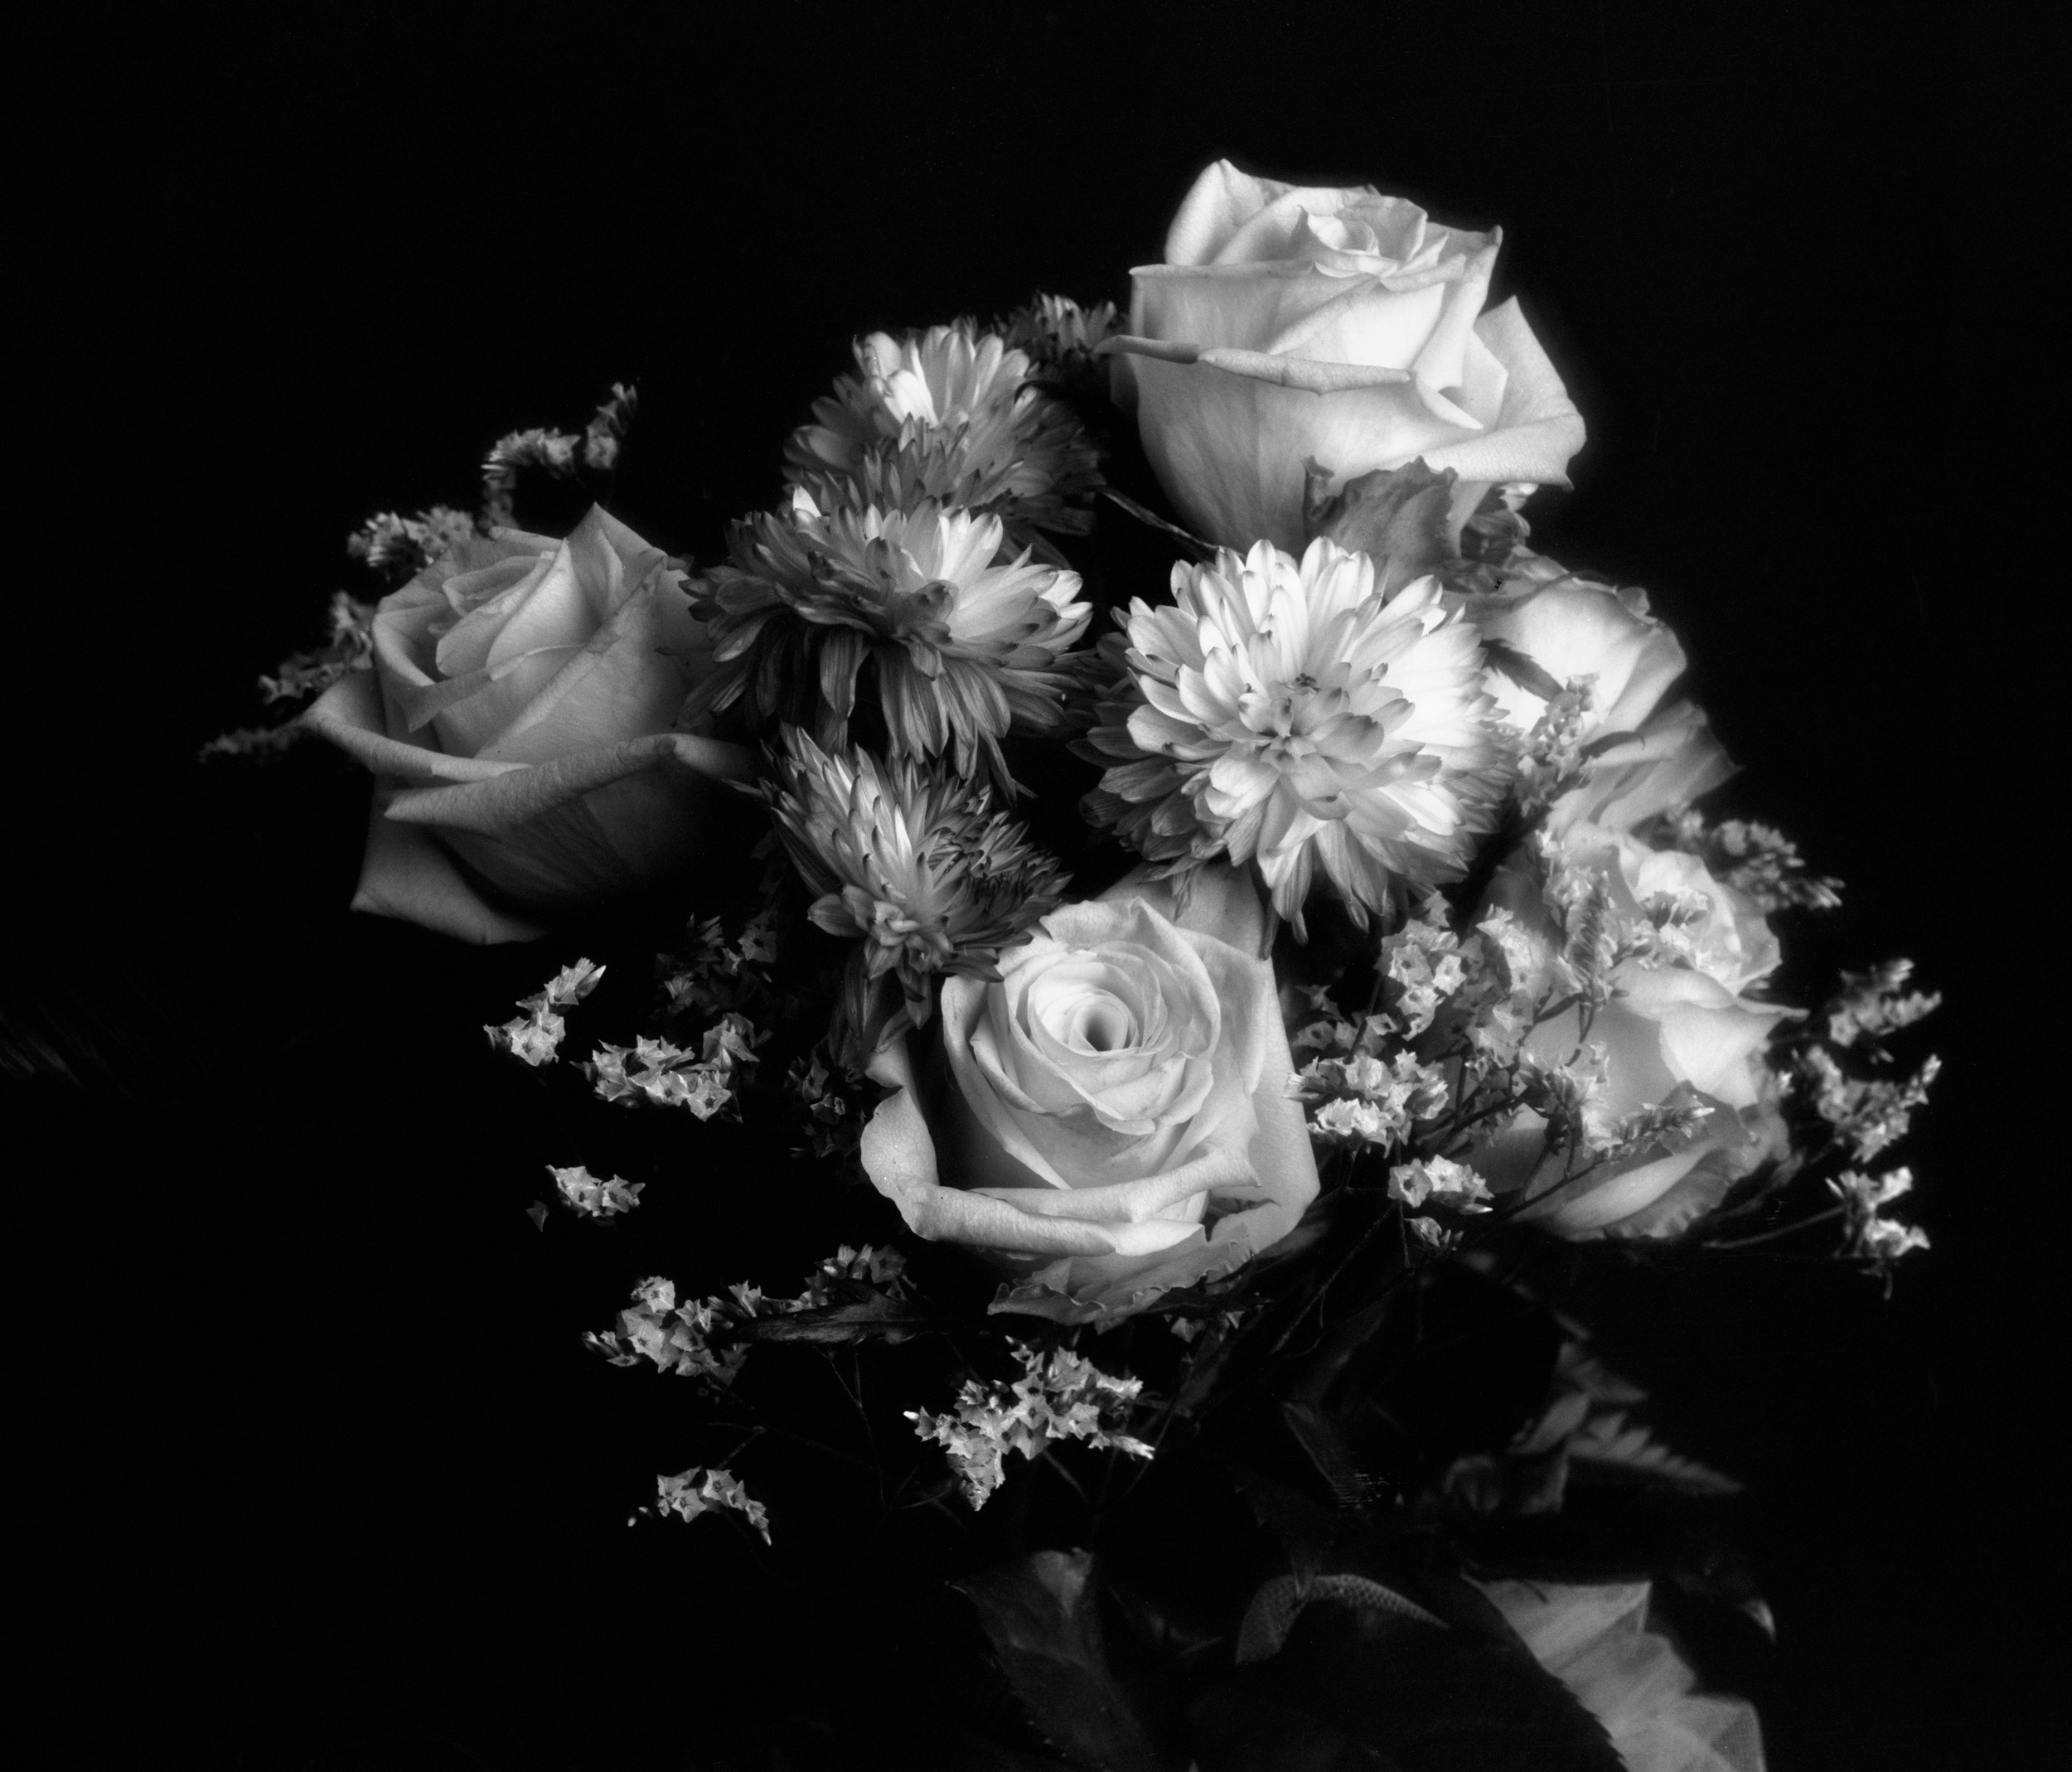 4x5_for_365_project_006_Giant_Bouquet_002_full.jpg